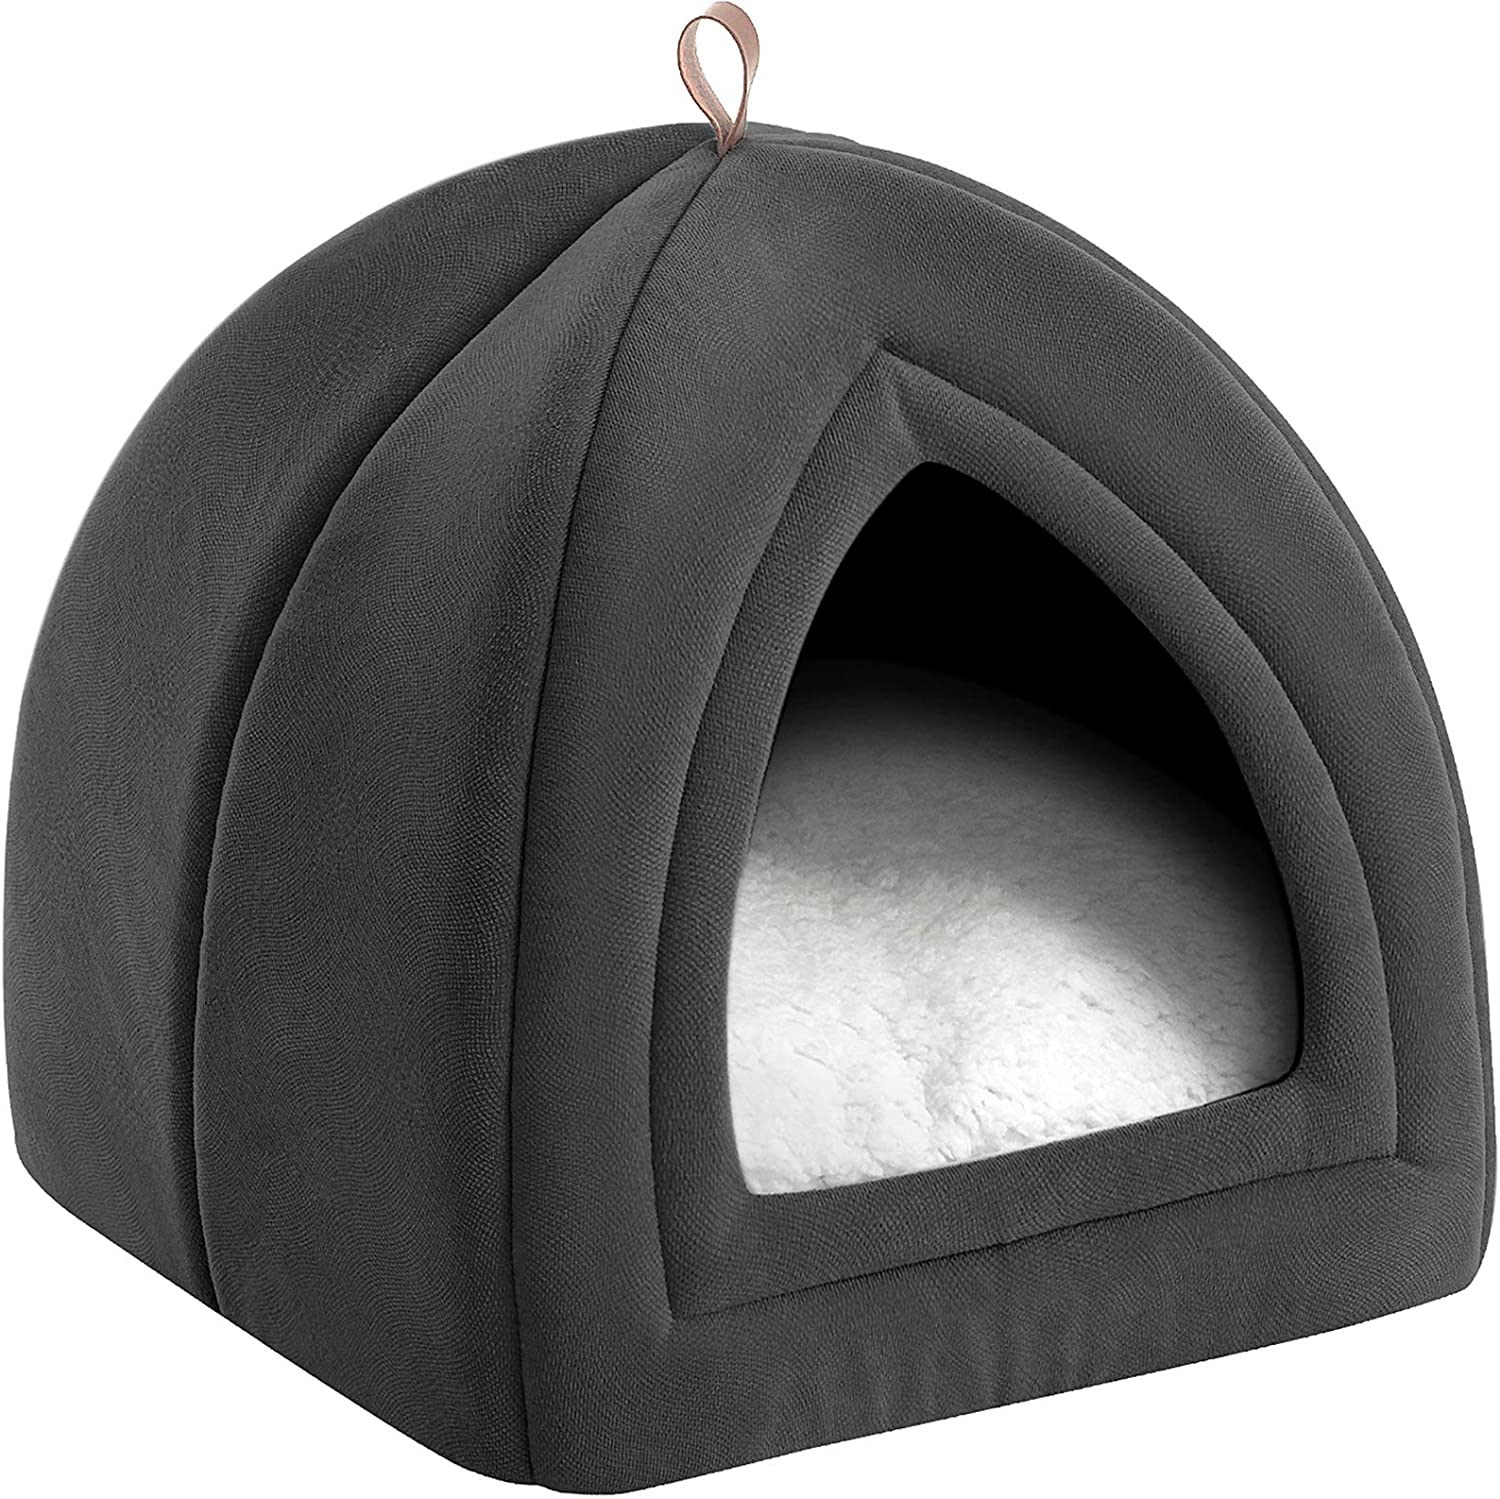 Bedsure Cat Bed Pet Tent Cave For Cats Small Dogs 15x15x15 Inches 2 In 2 Cat Tent Cat Bed With Removable Washable Cushioned Pillow Microfiber Indoor Outdoor Pet Beds Dark Grey Amazon Ca Home